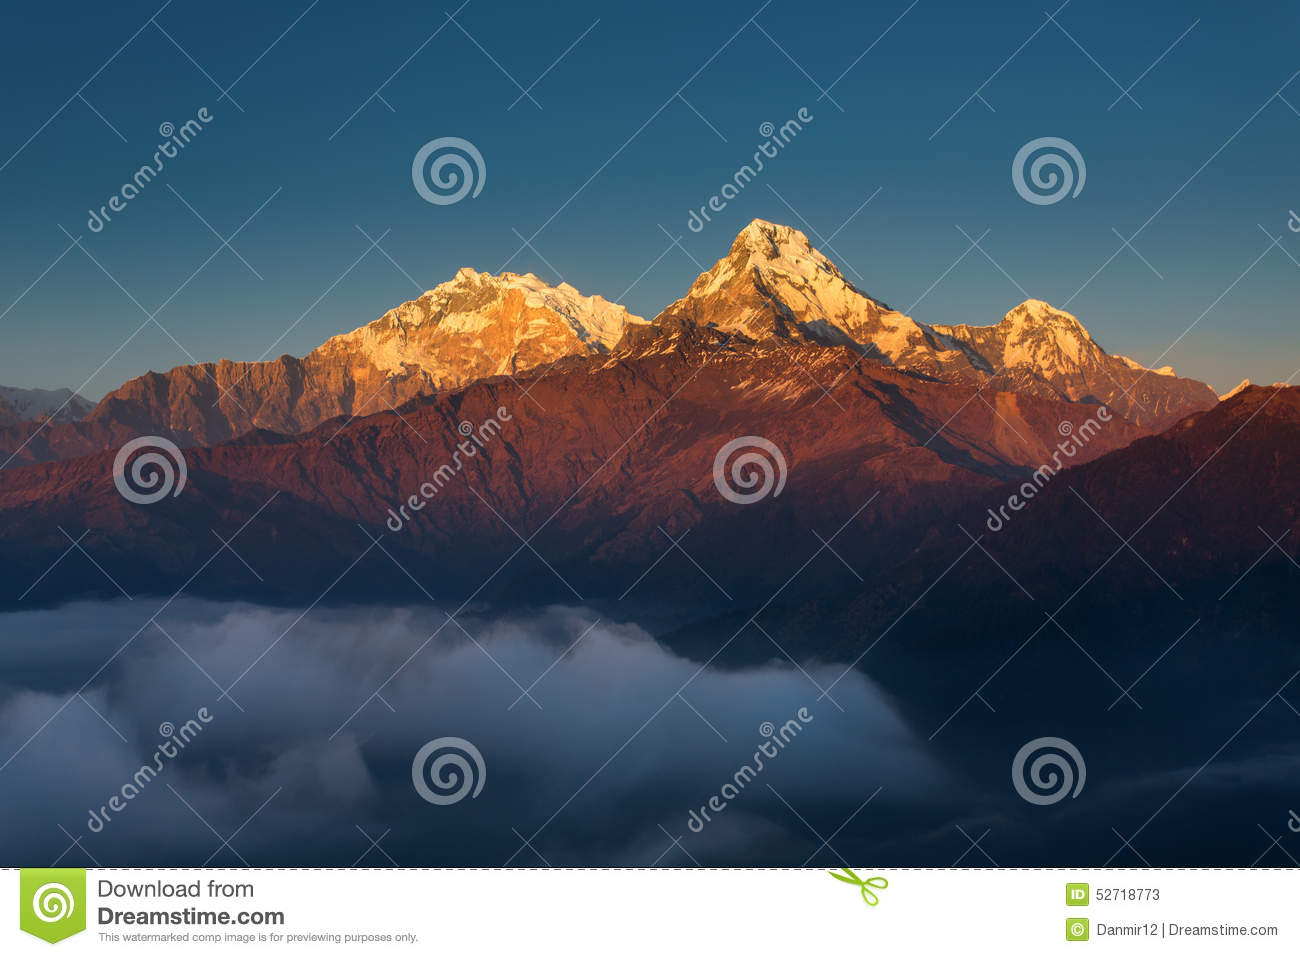 Annapurna I Himalaya Mountains View from Poon Hill 3210m at suns